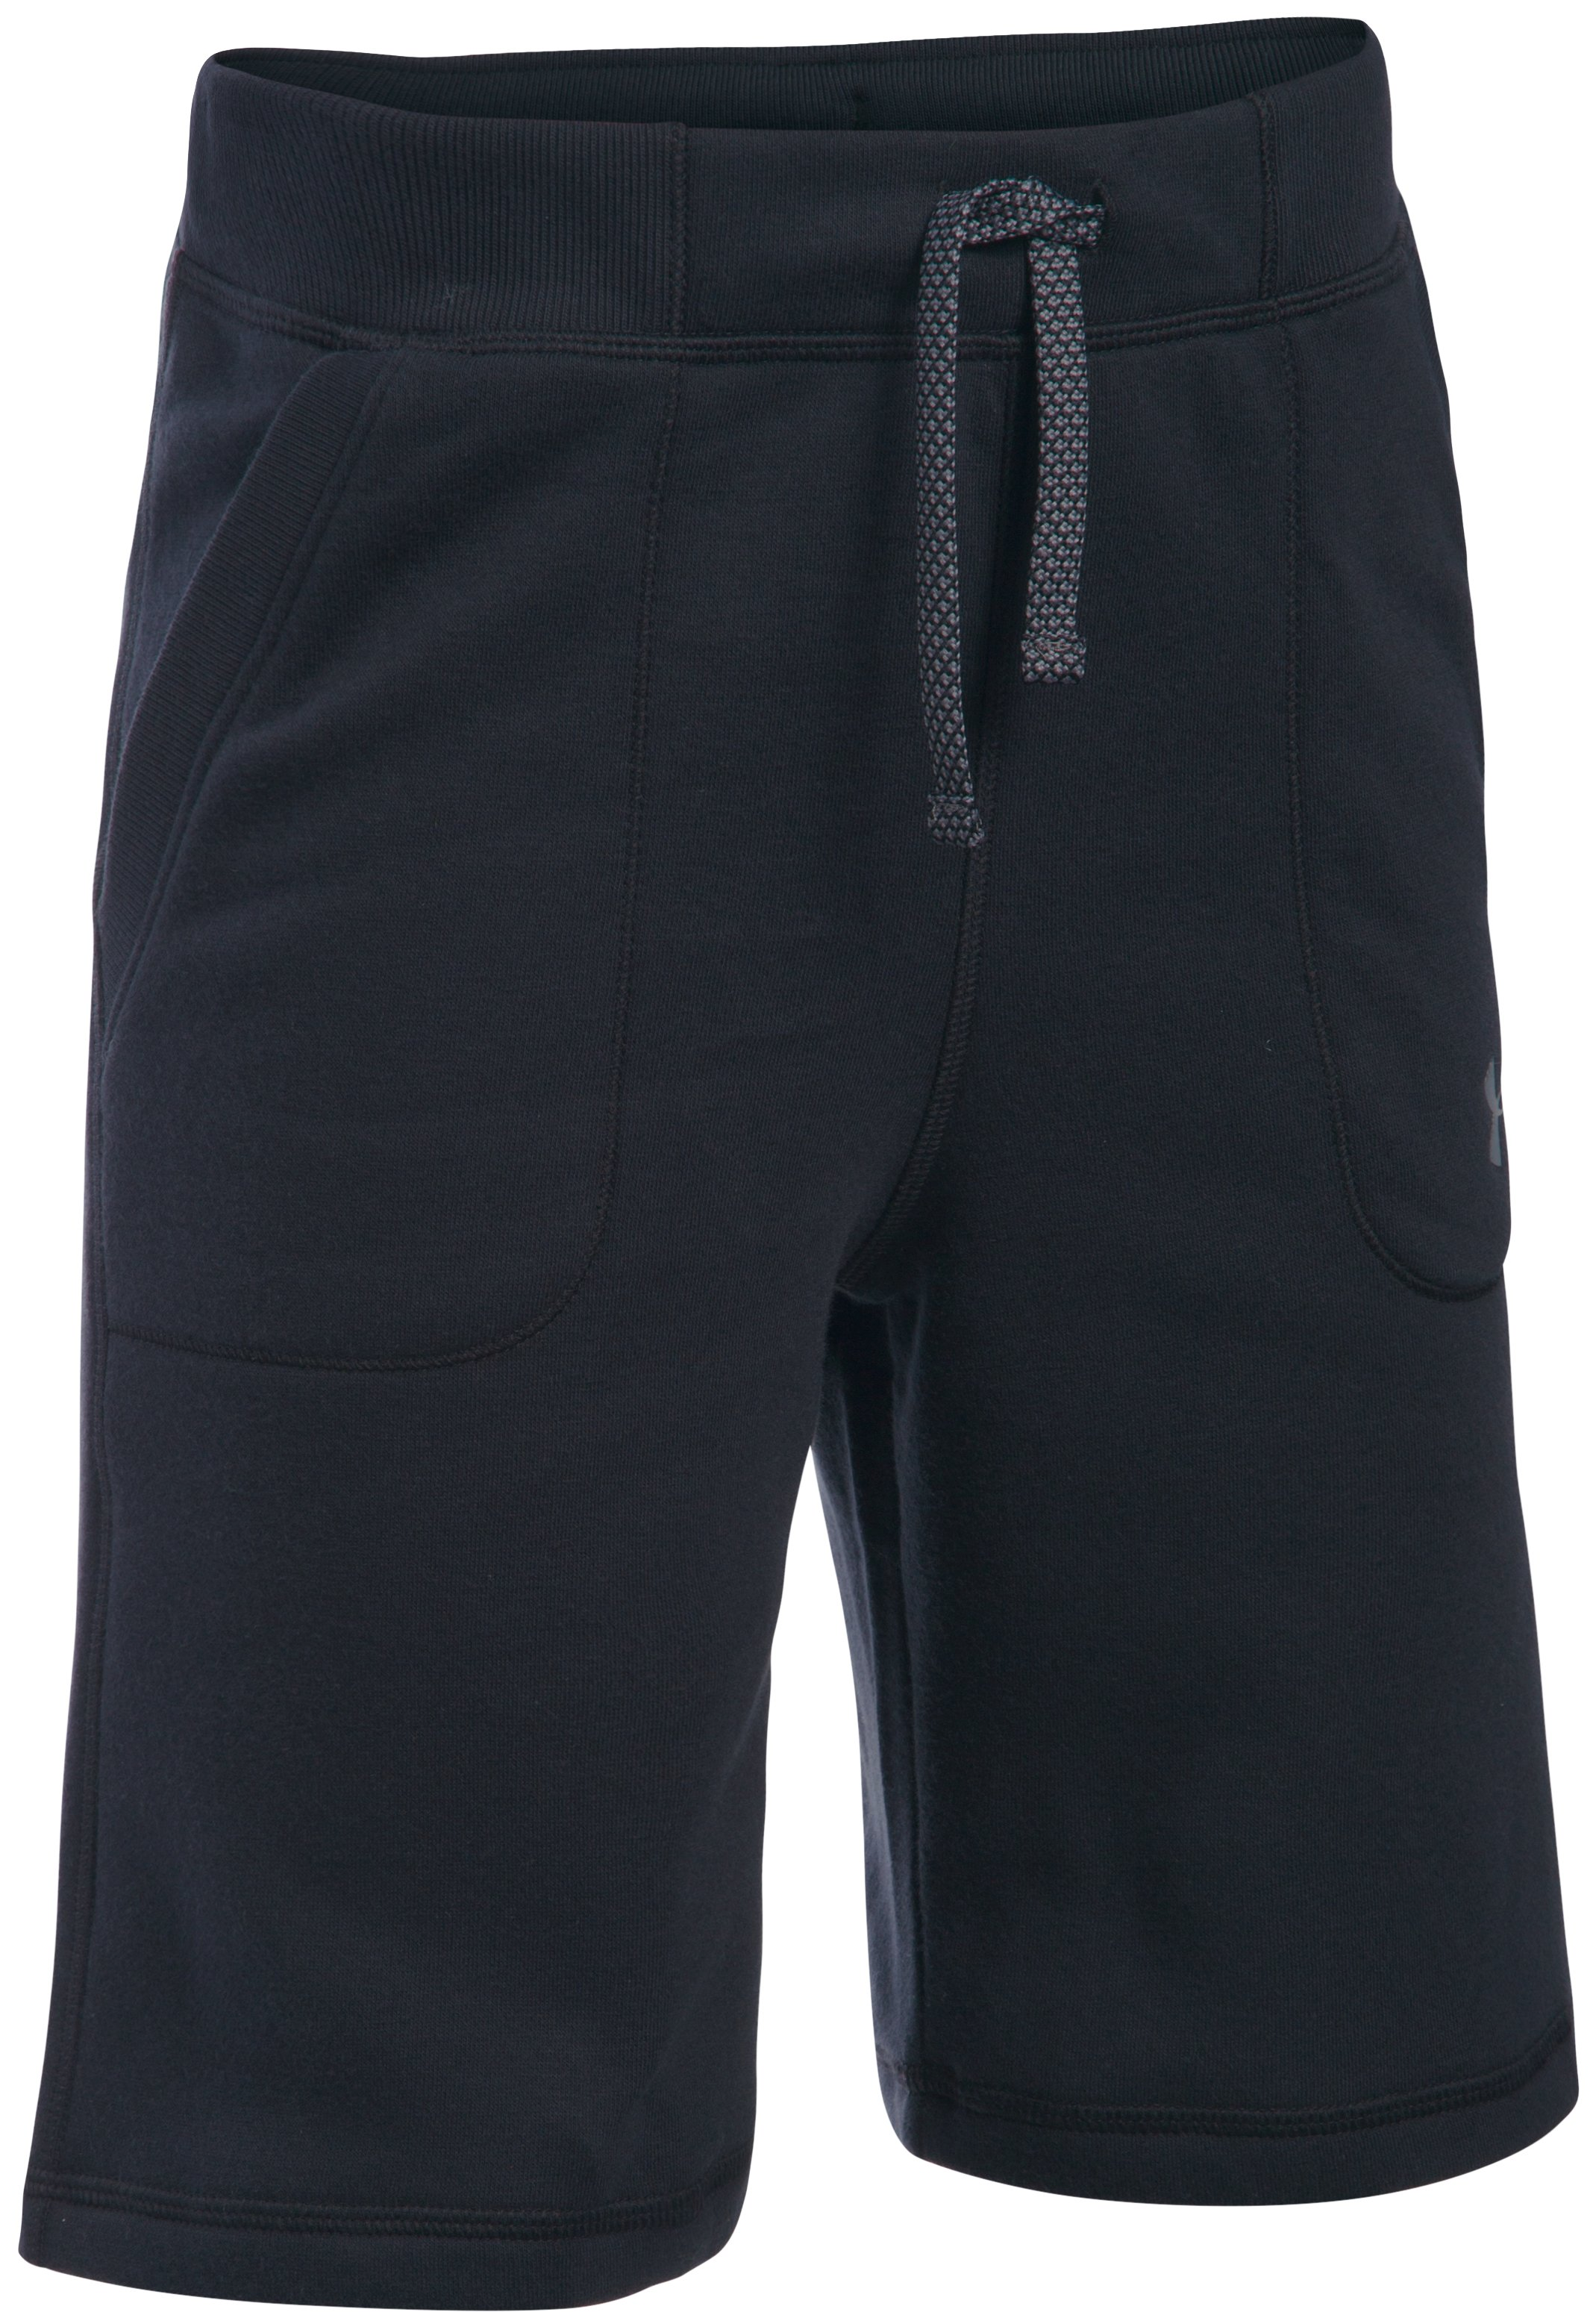 Boys' UA Titan Fleece Shorts, Black